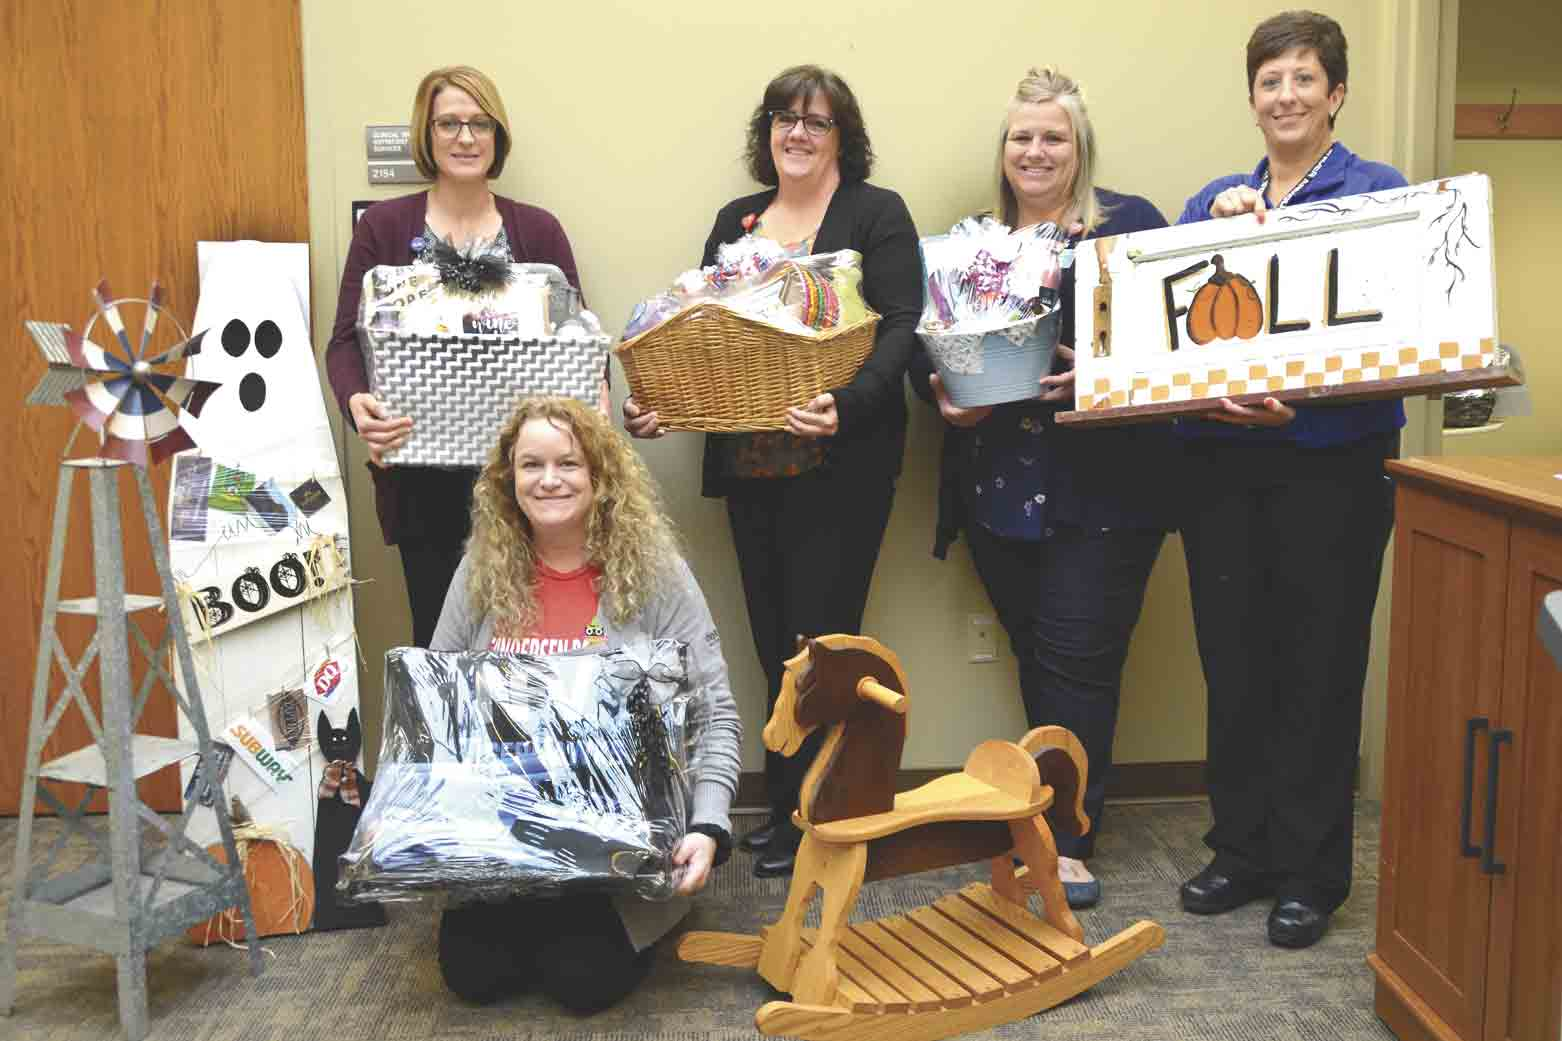 There will be baskets filled with almost anything imaginable along with other gifts available for silent auction at the Palmer Memorial Foundation Fall Fund Fest, Thursday, at Gundersen Palmer Lutheran Hospital and Clinics in West Union. Pictured are hospital staff with some of the baskets and...